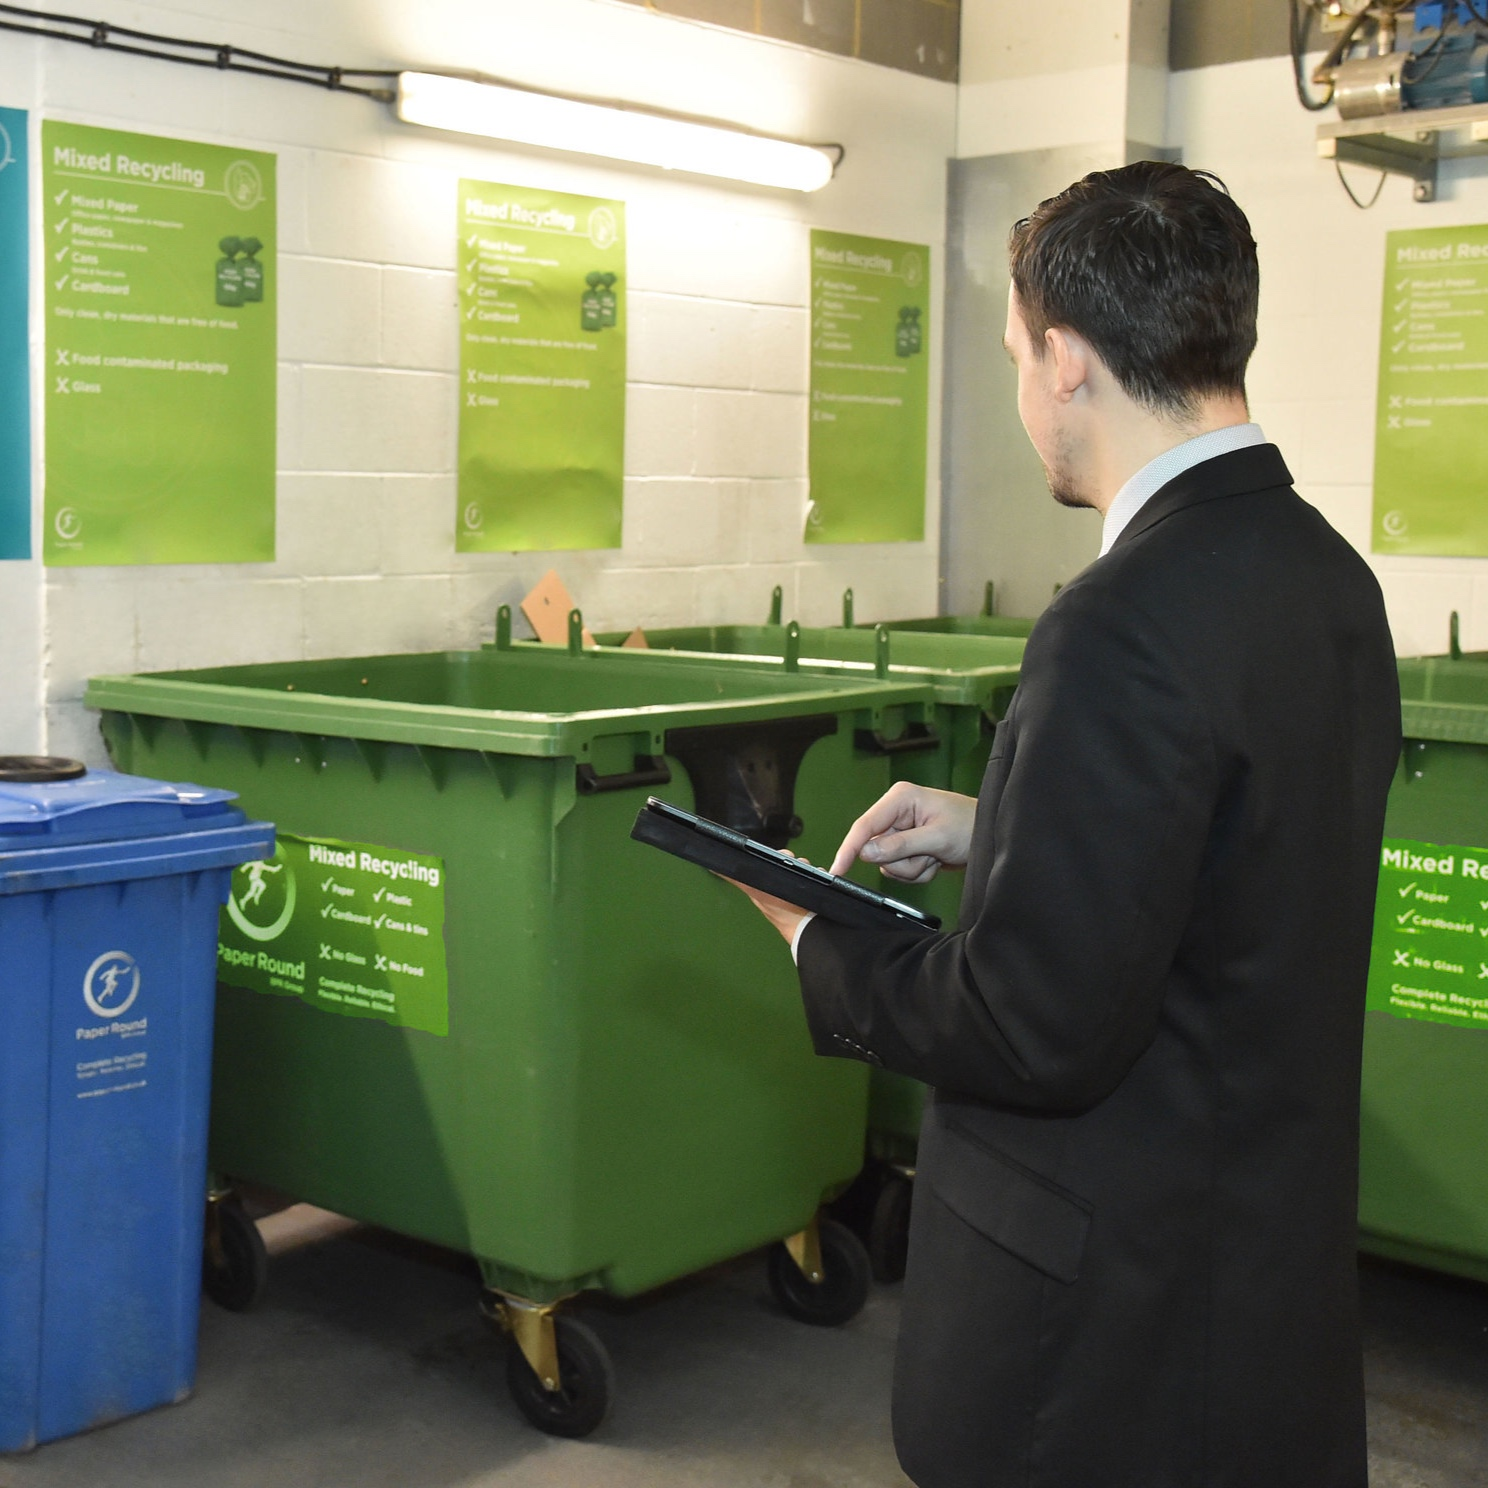 Waste and Recycling Audits - Experts will visit your premises to carry out a free, detailed audit of the waste generated, and produce a report to inform ways of cutting waste and increasing recycling rates.Find out more+